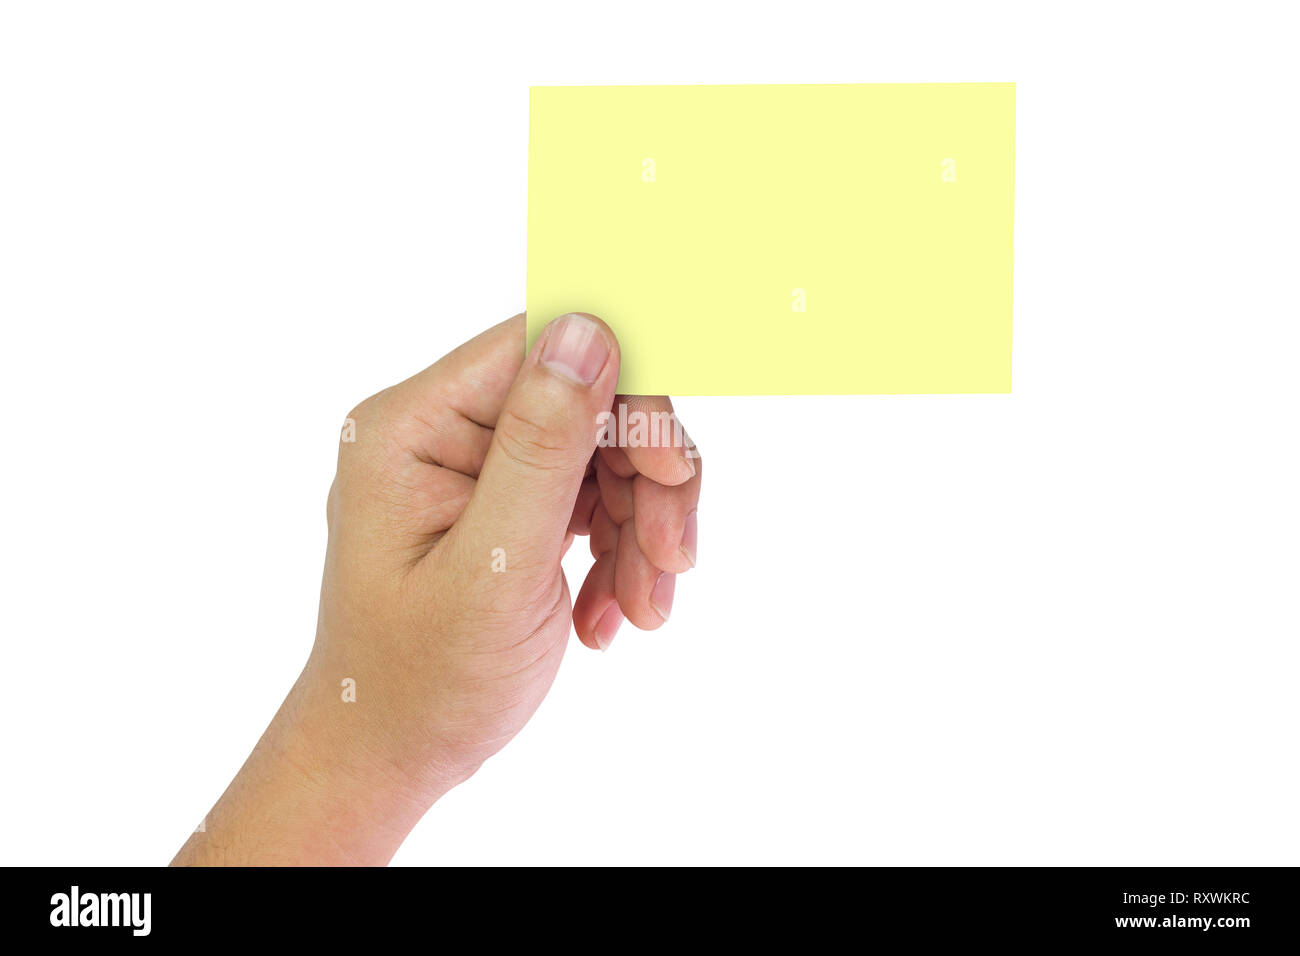 2f754be85ca9b Holding Yellow Sticky Note Hand Photos & Holding Yellow Sticky Note ...